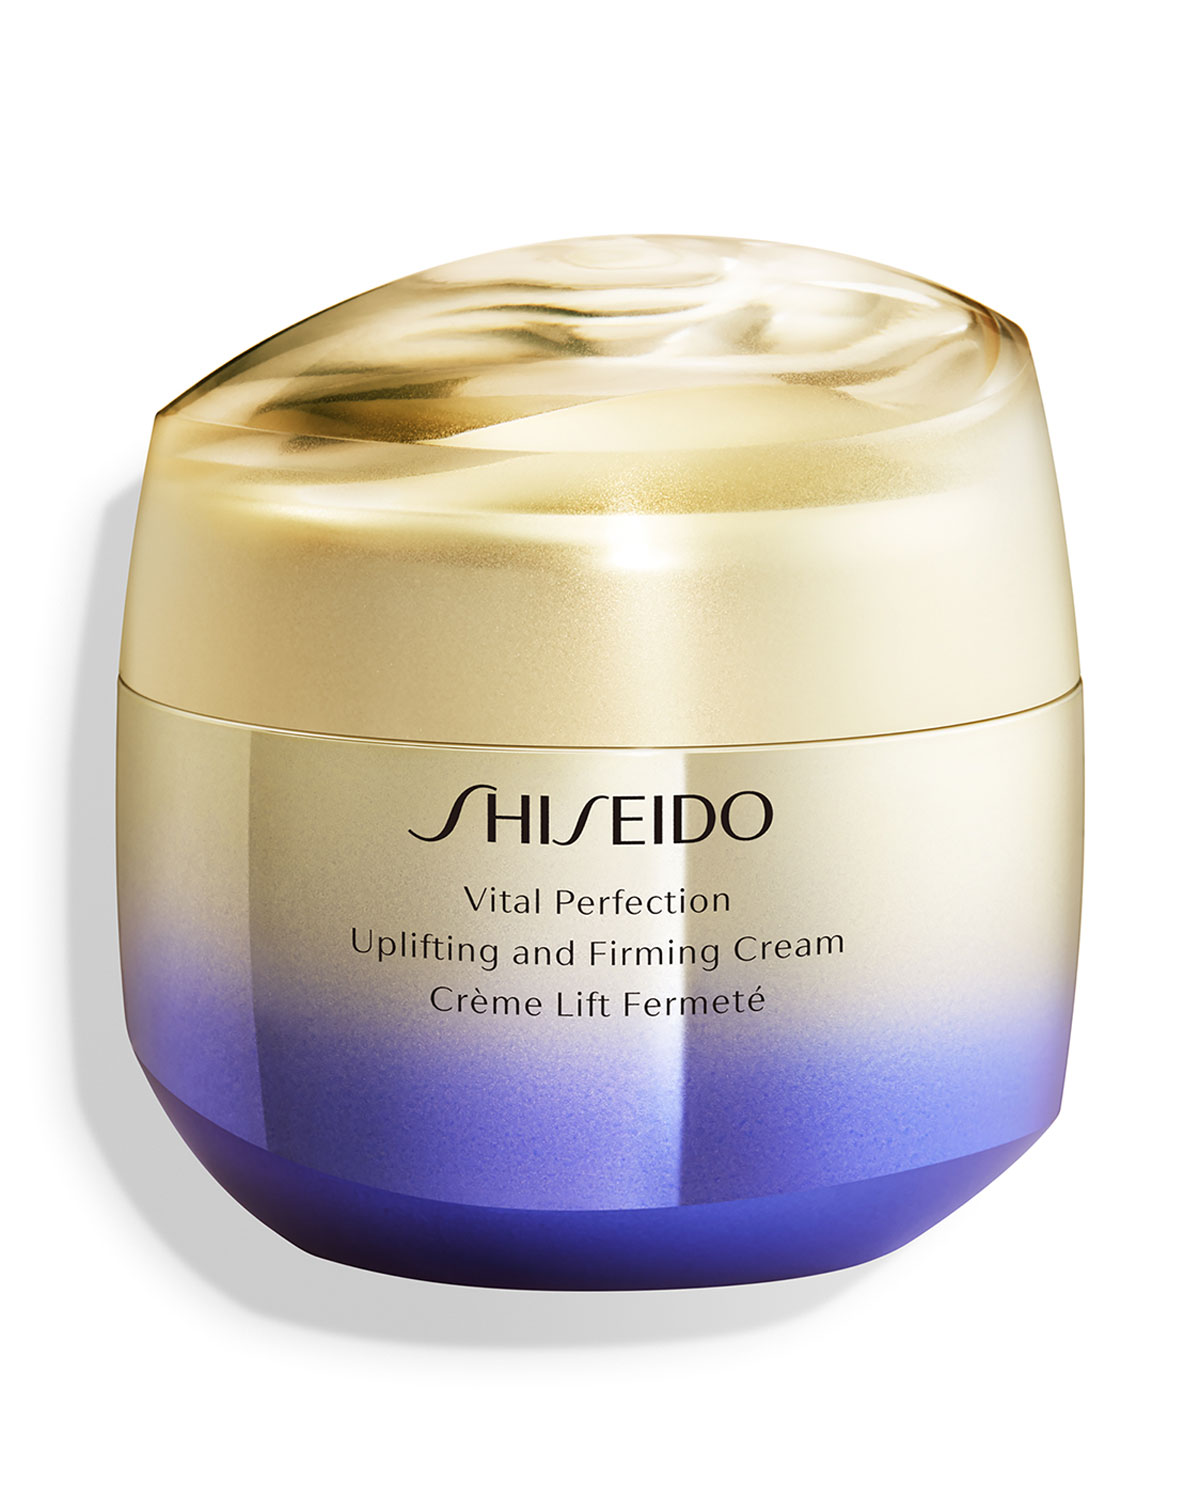 Shiseido Vital Perfection Uplifting & Firming Cream Enriched